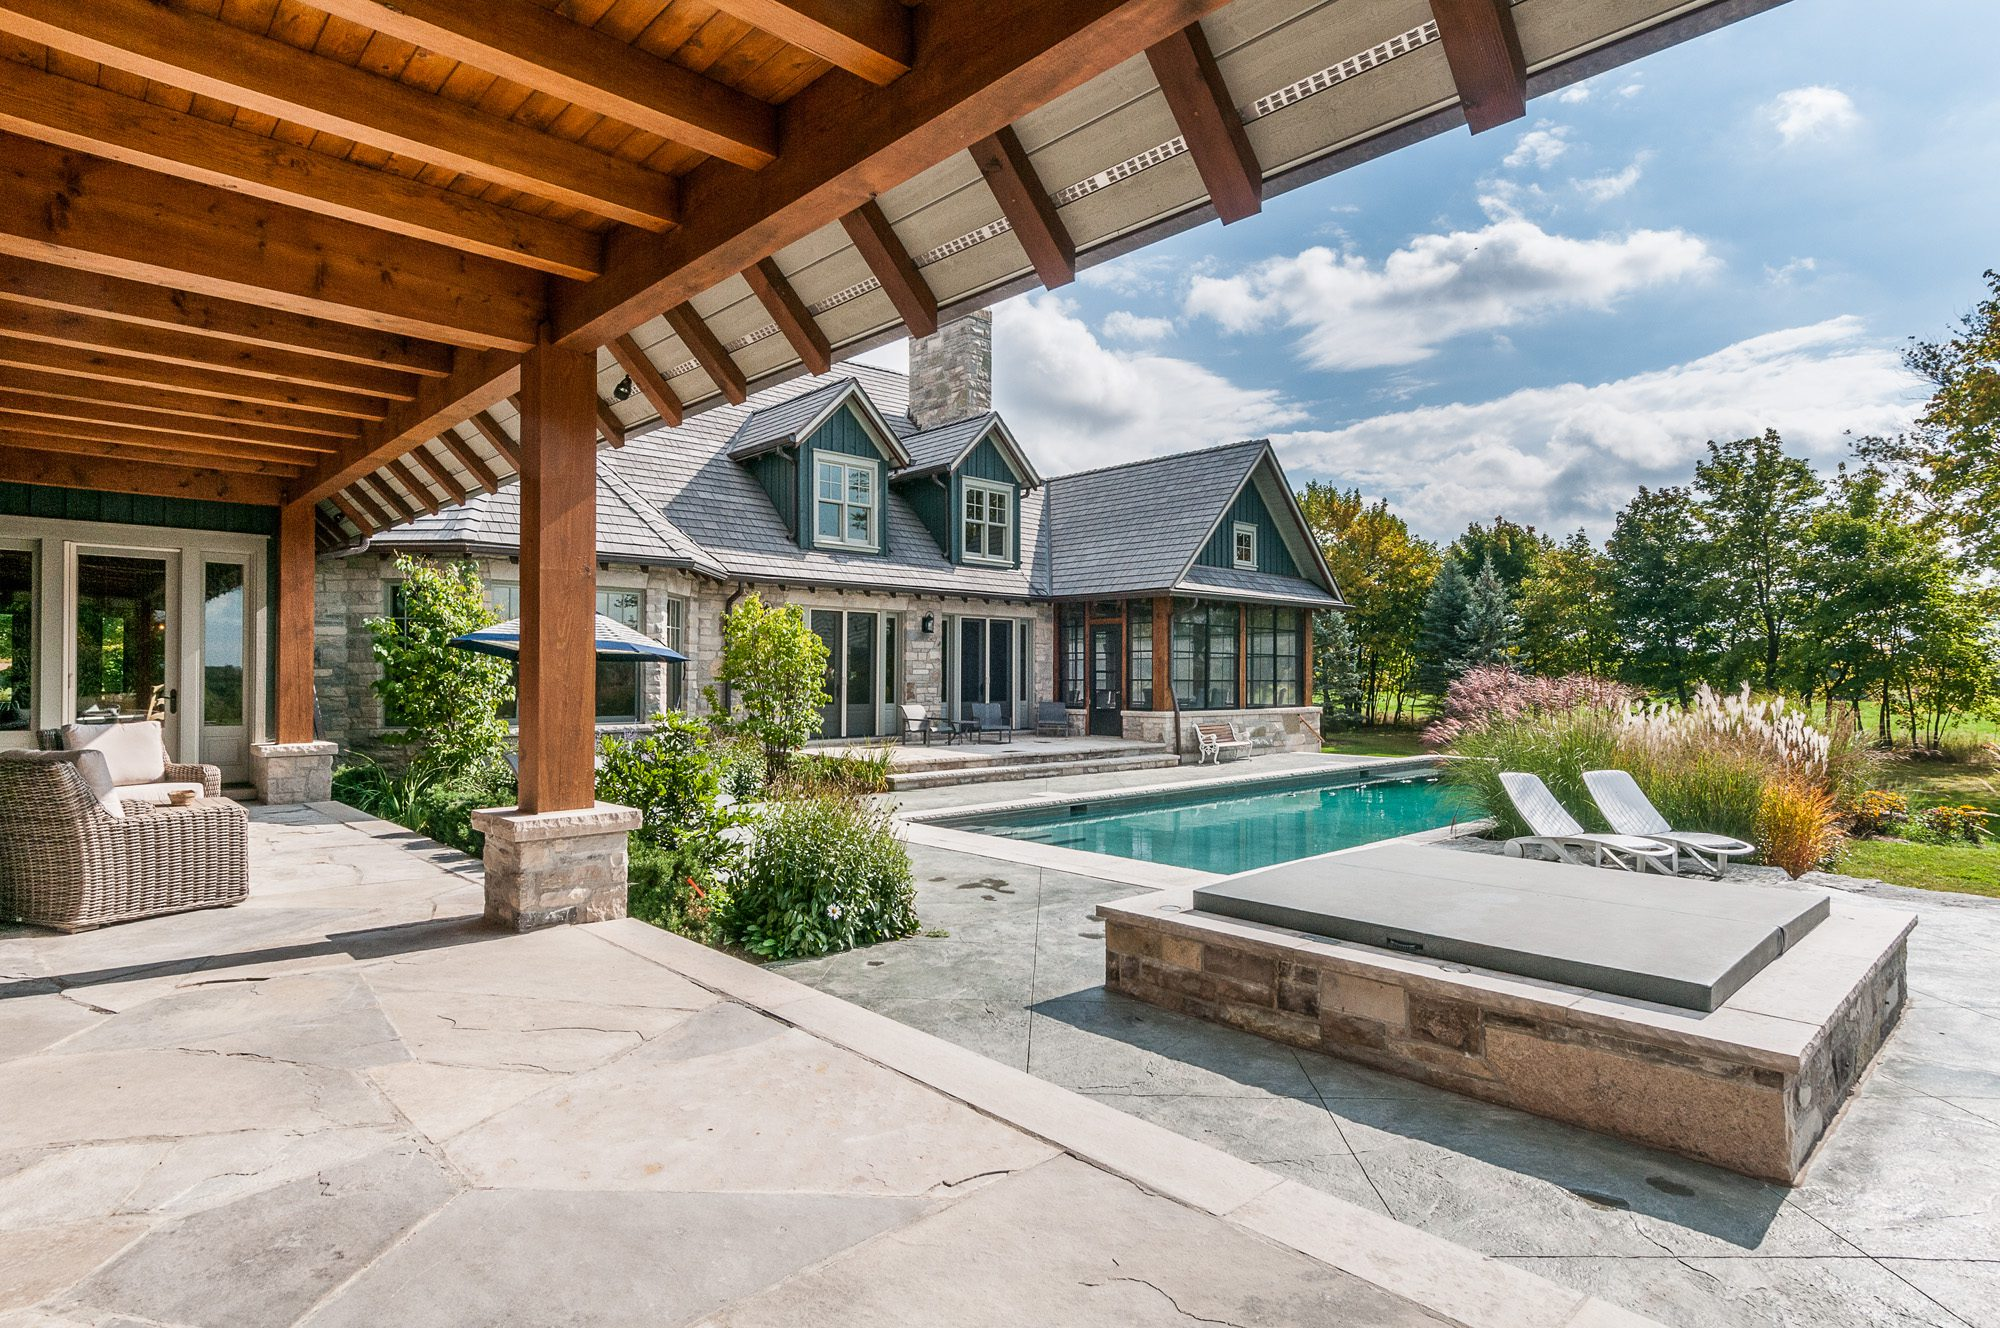 Normerica Timber Frame, Exterior, Country House, Porch, Pool, Outdoor Living, Outdoor Entertaining